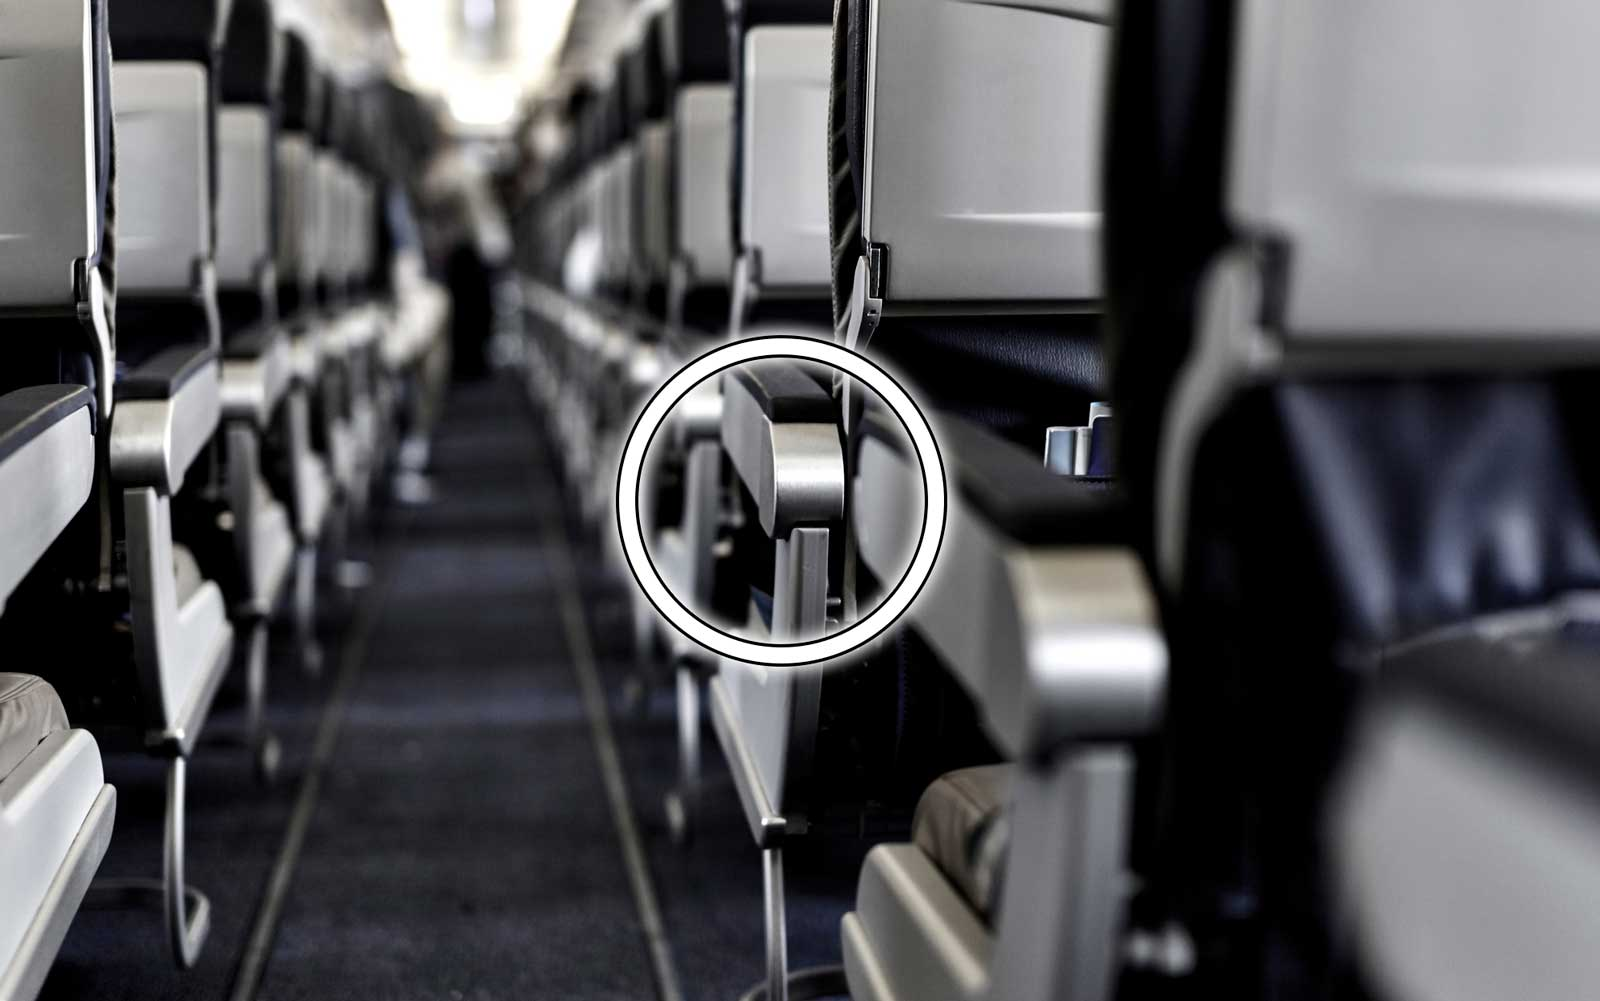 There's a secret button on your airplane seat that will instantly give you more room